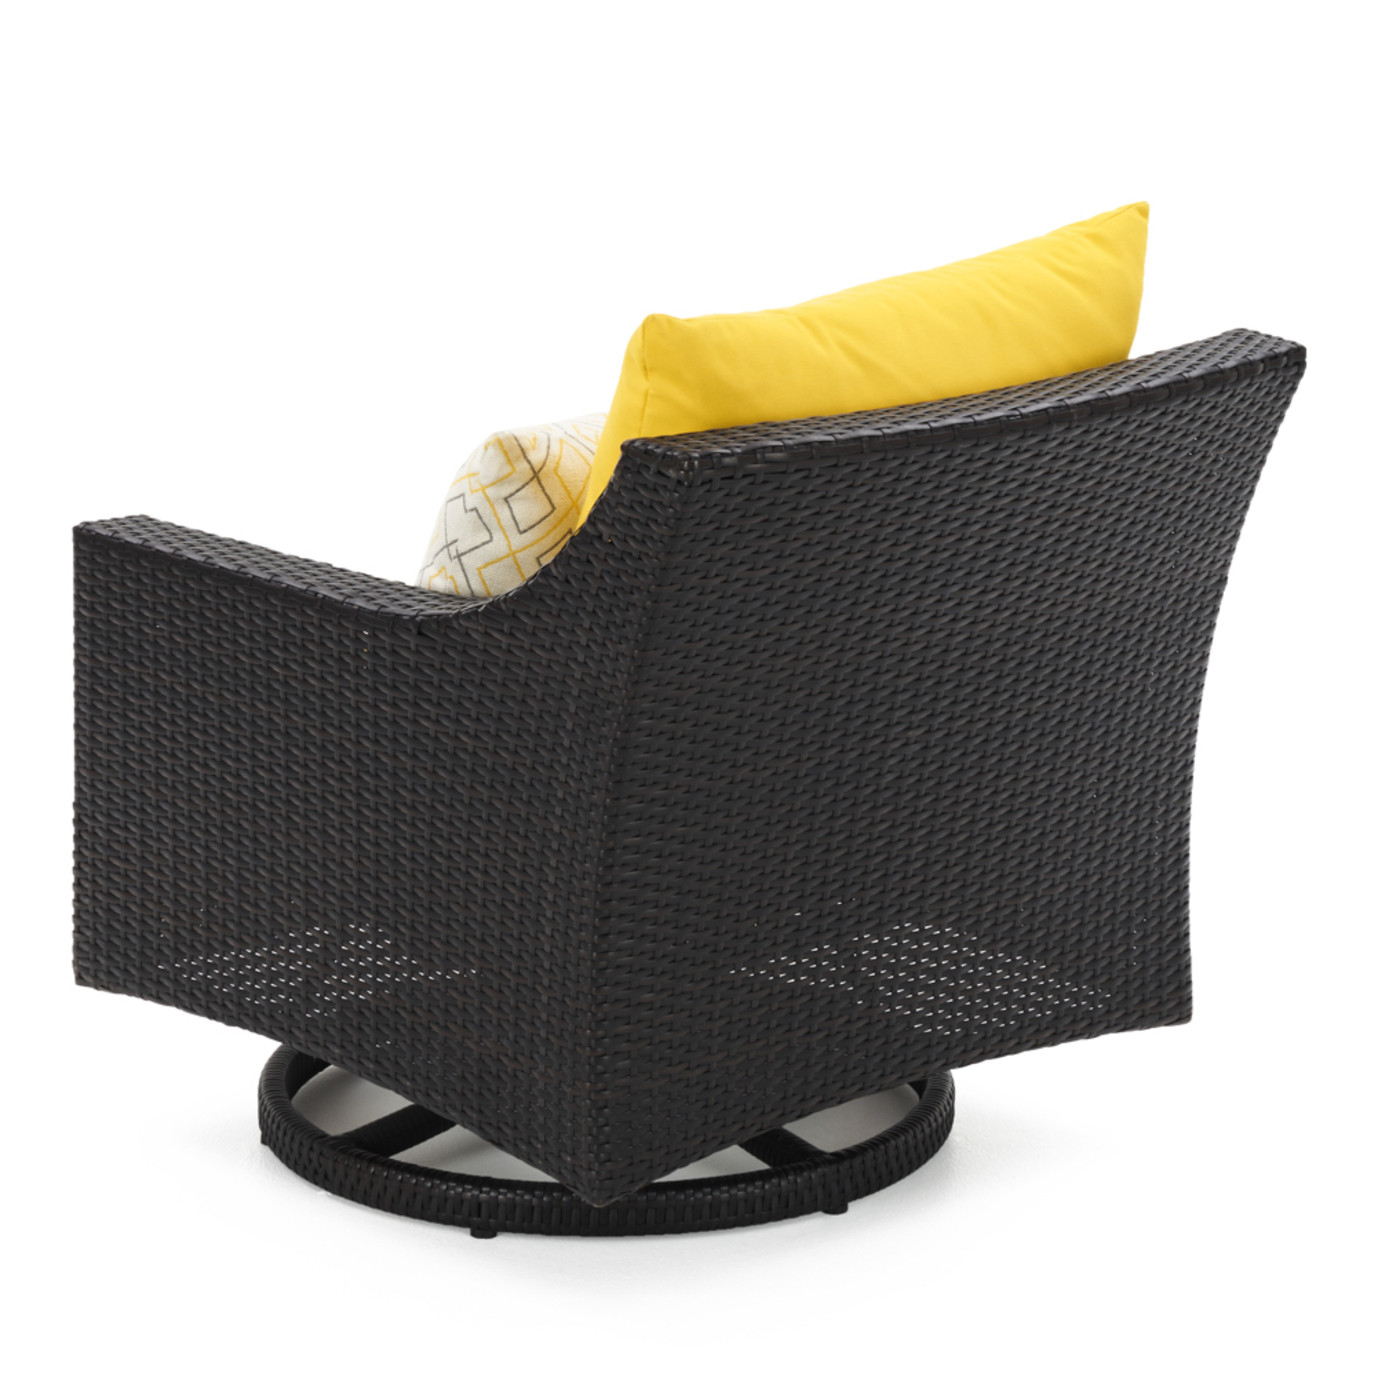 Deco™ Motion Club Chairs - Sunflower Yellow